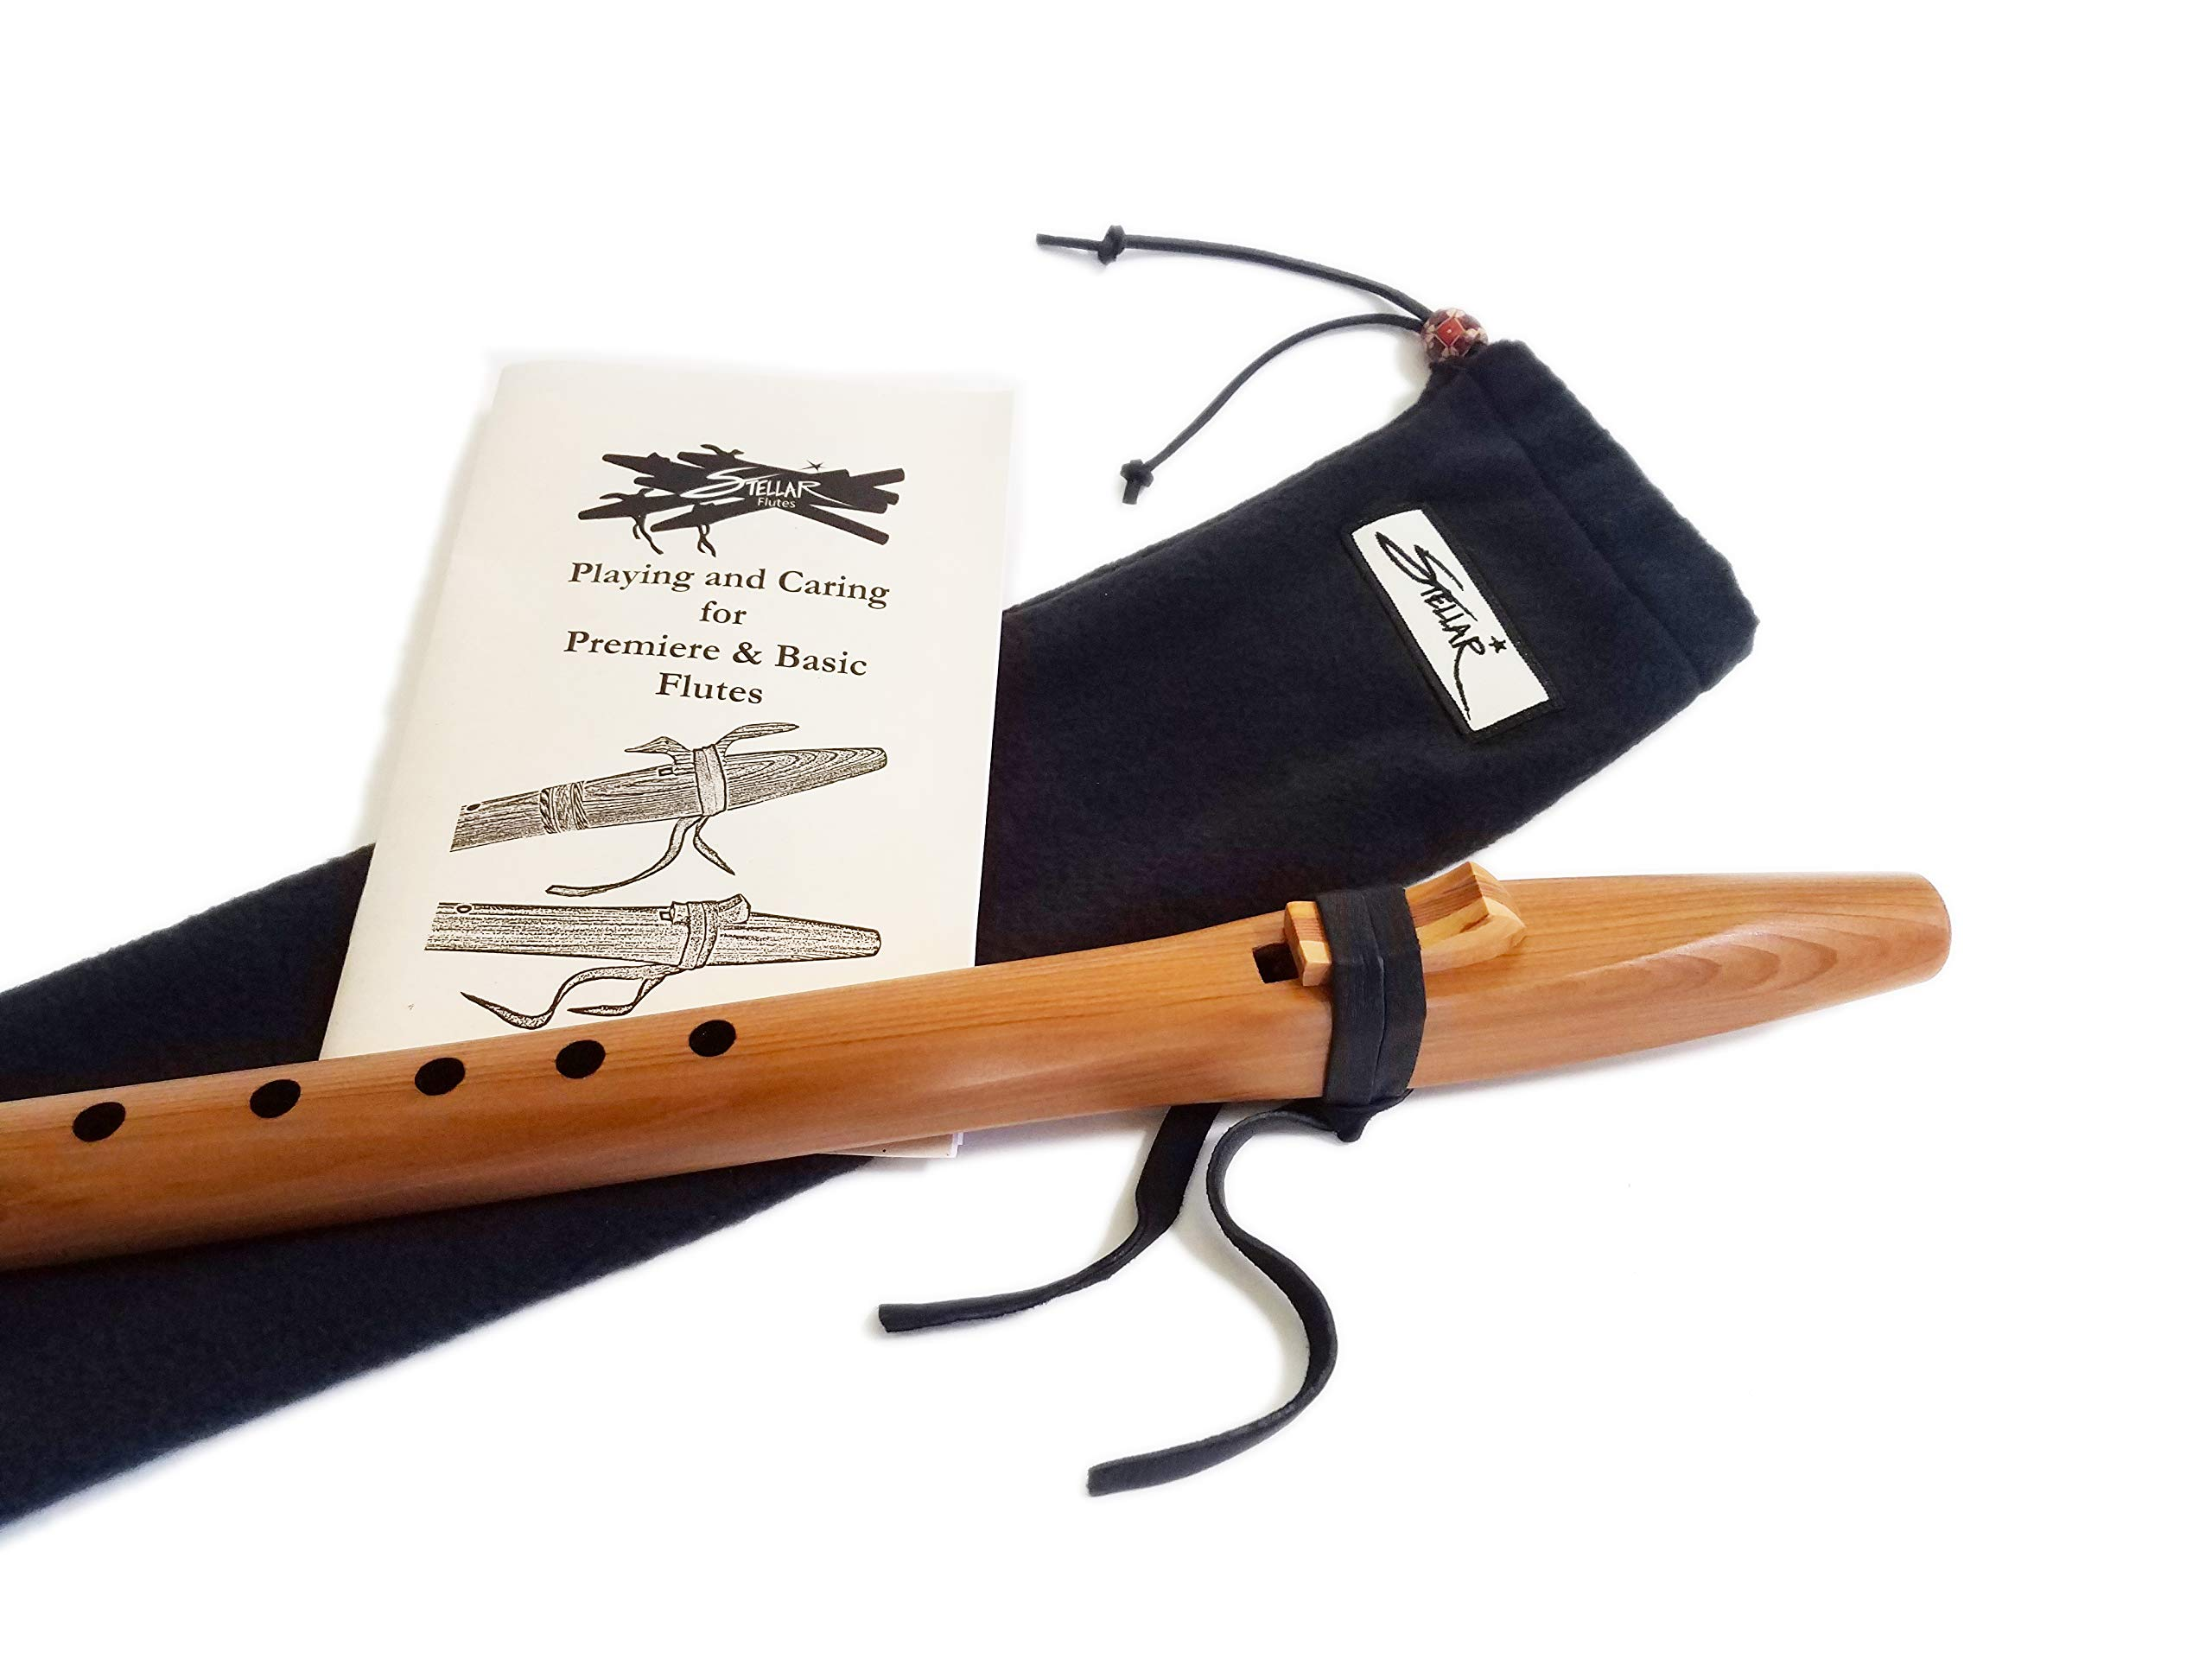 Stellar Basic Flute Key of F# - Native American Style Flute with Carrying Case (Natural Heartwood Cedar) by Stellar Flutes